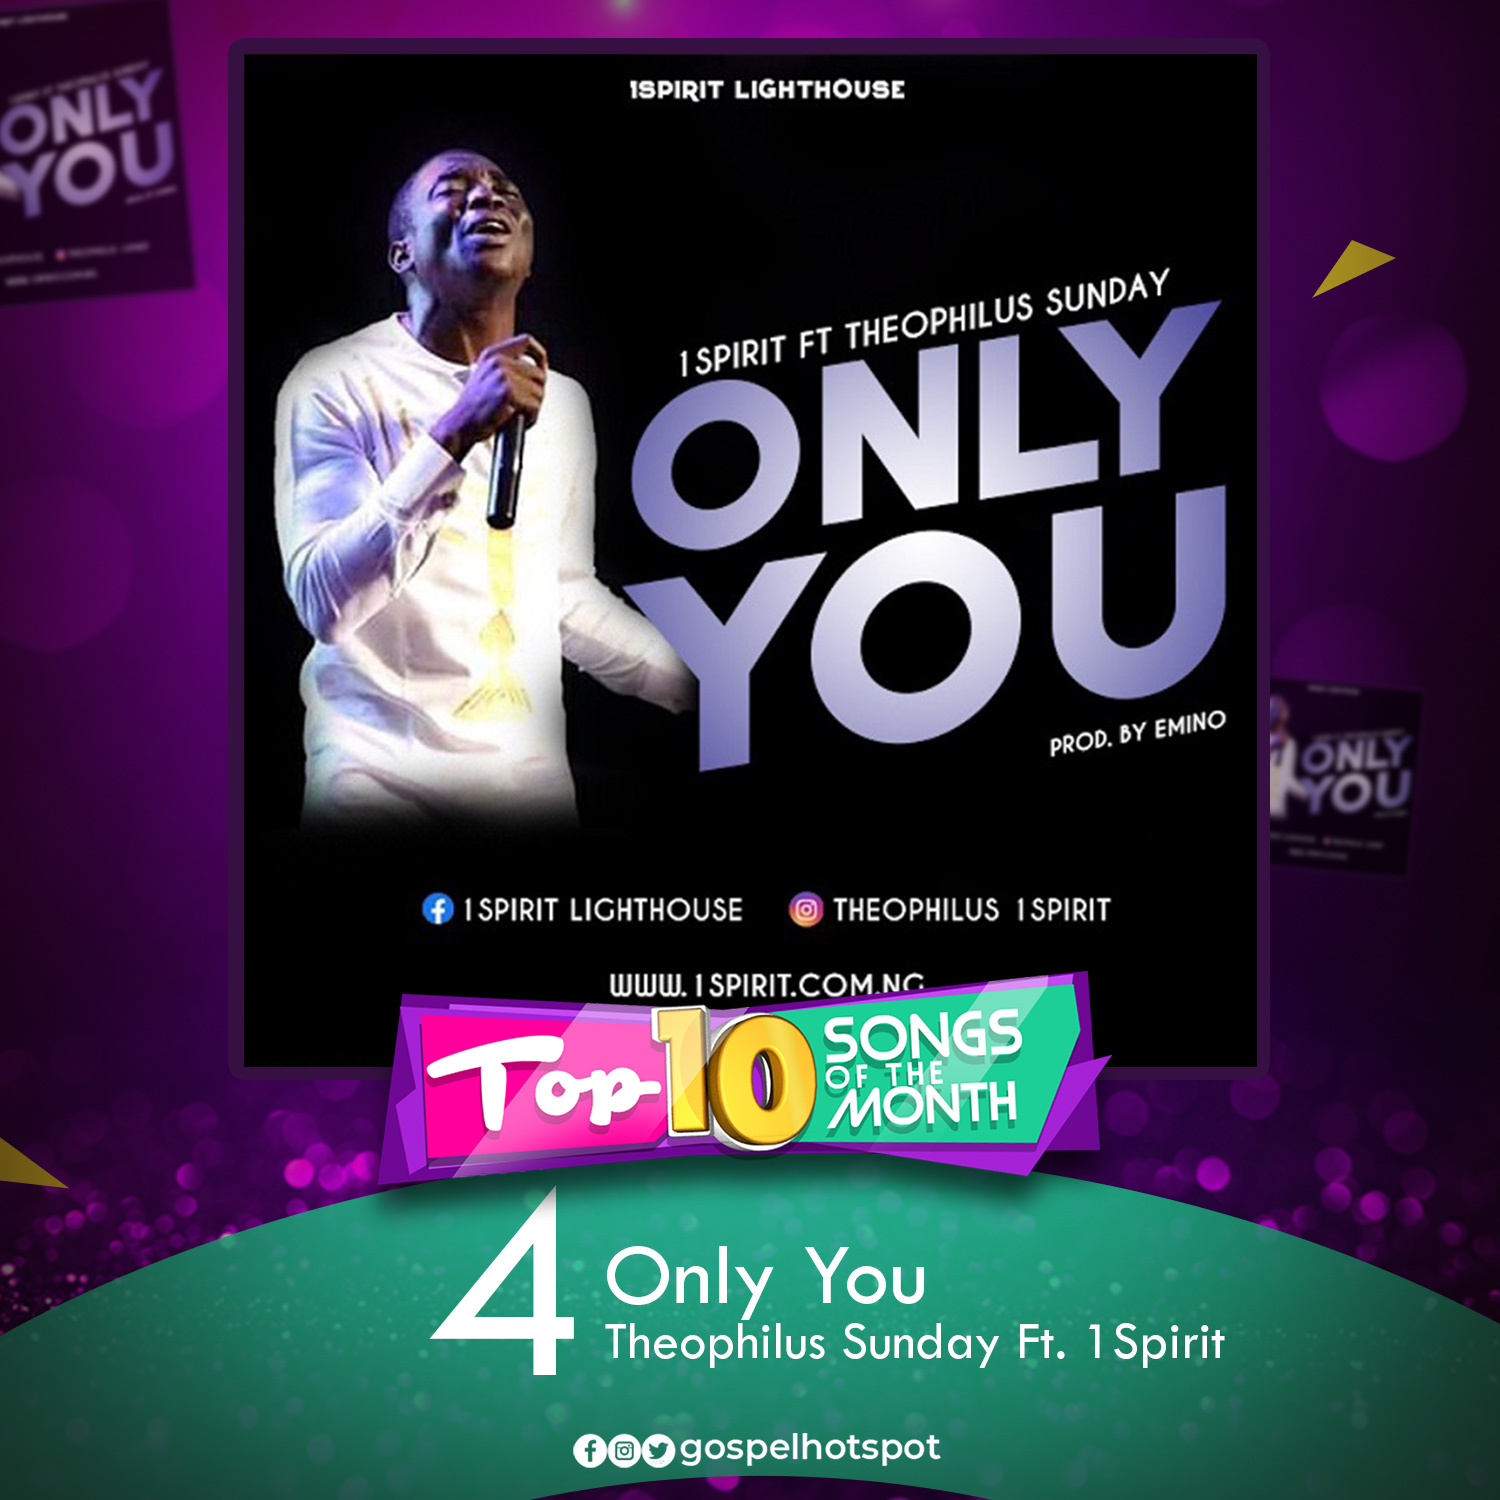 Only You – Theophilus Sunday Ft. 1Spirit